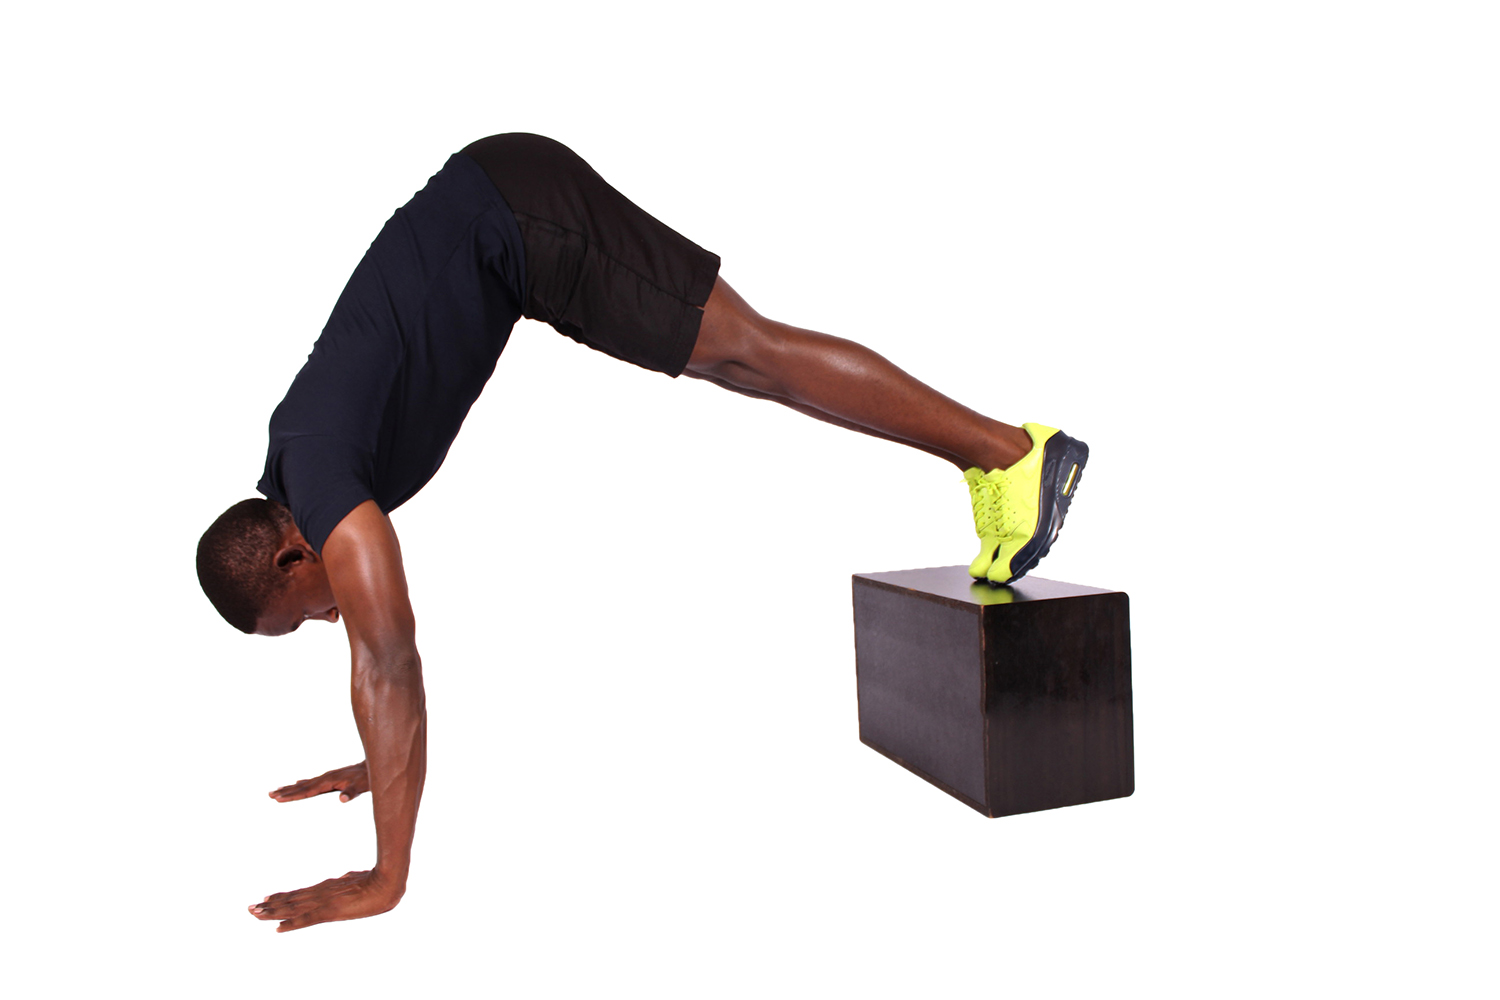 Strong man doing pike push ups with feet elevated